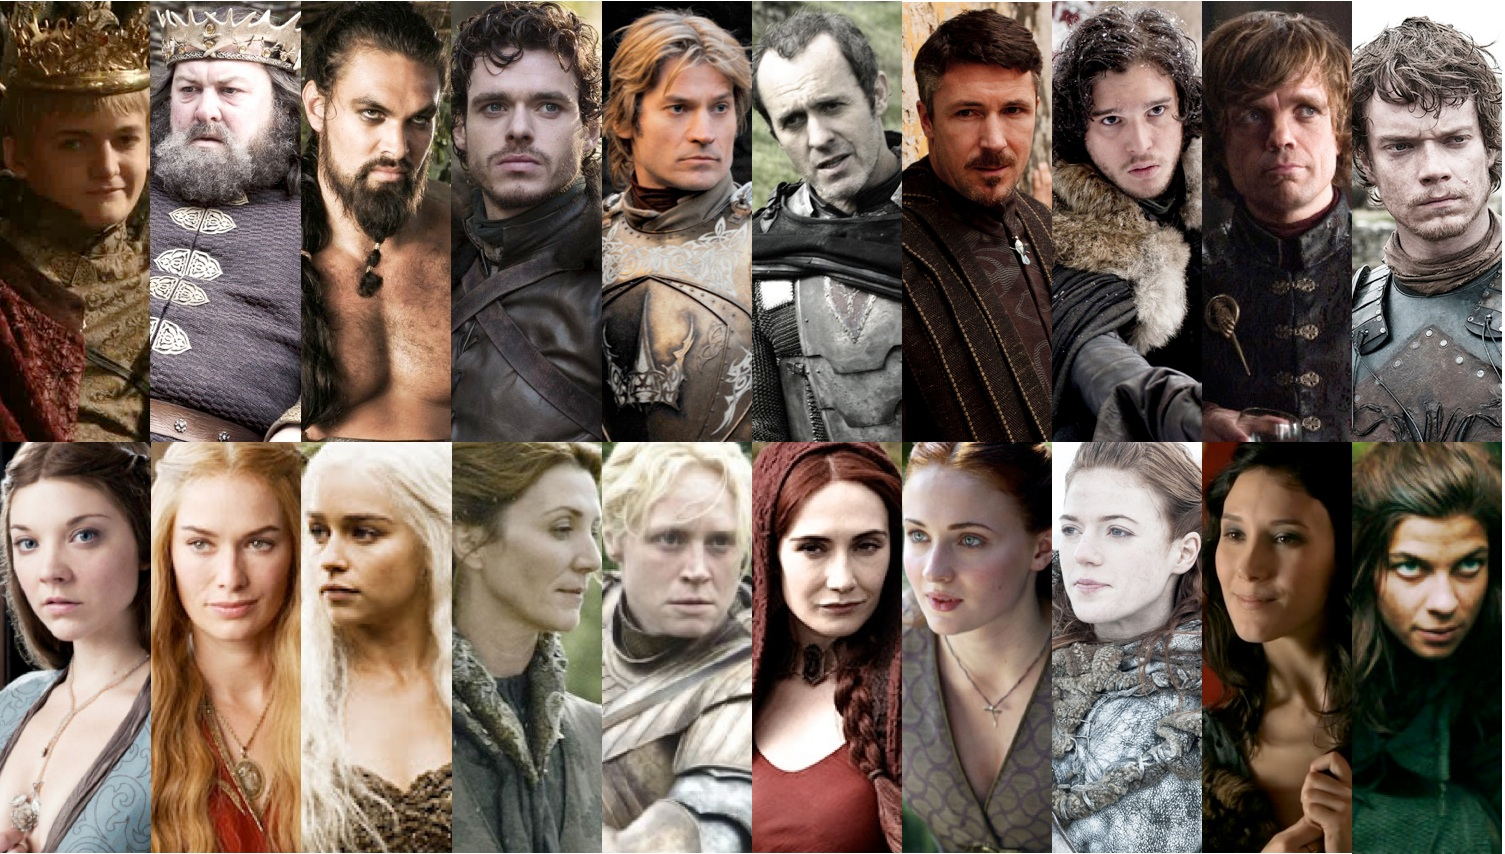 game of thrones literature Game of thrones, the hbo hit series, is awesome don't get me wrong it's based on the song of ice and fire fantasy novel series by george r r martin i.